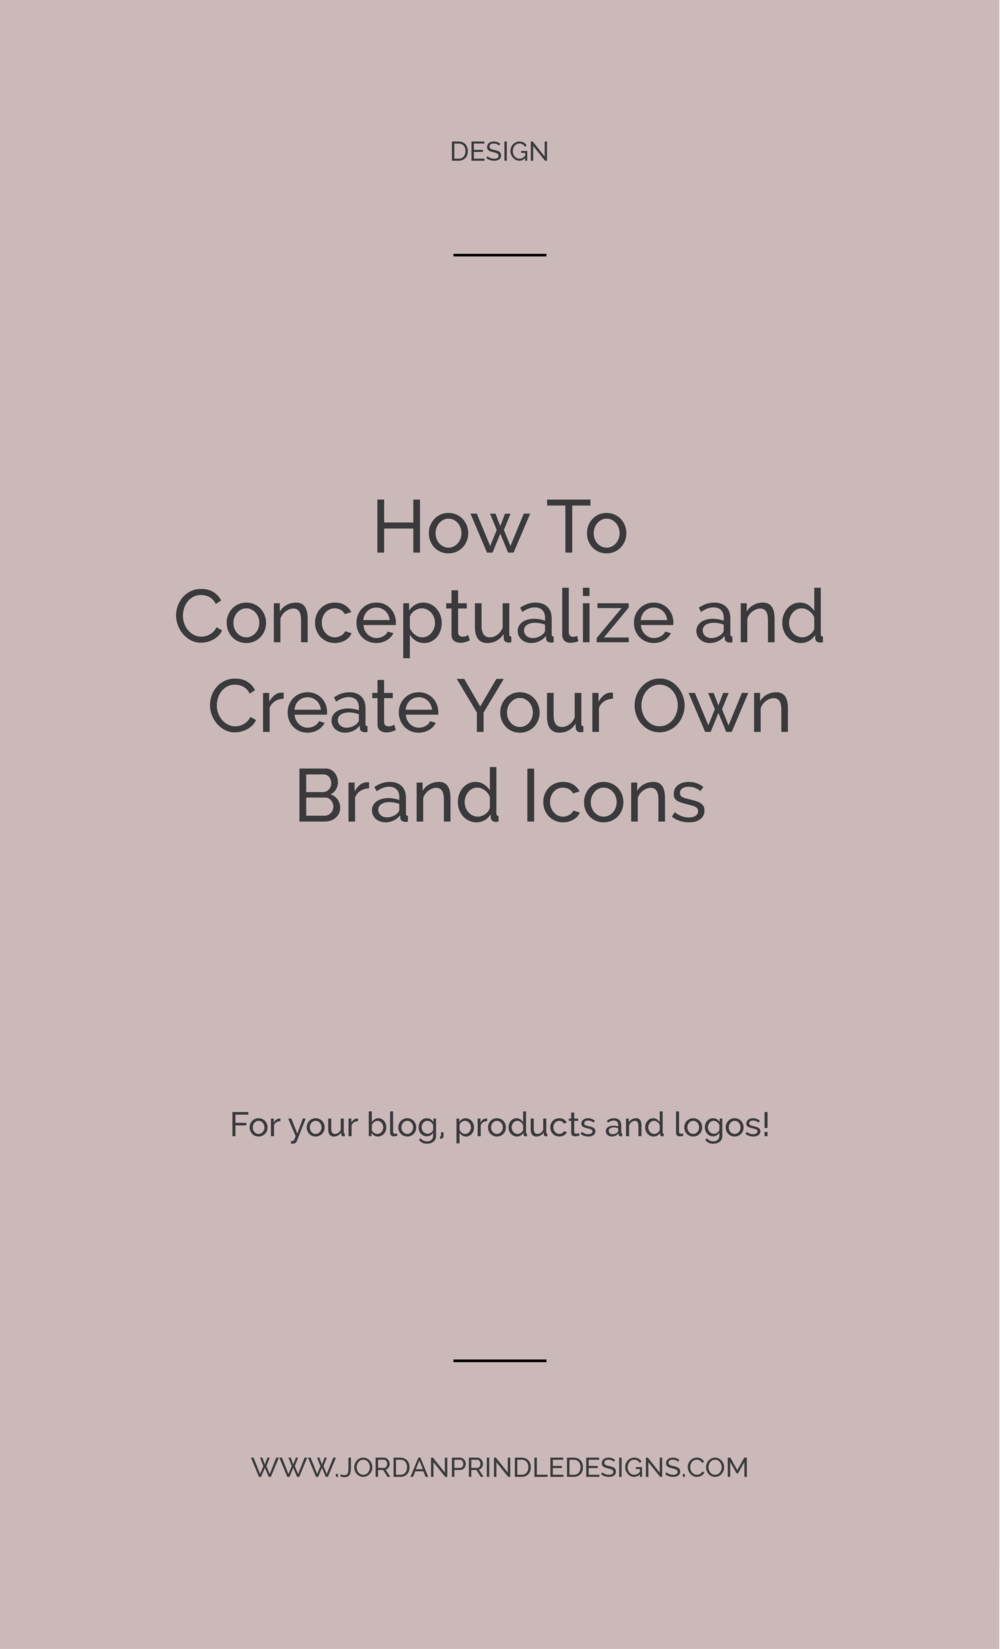 How to Conceptualize and Create Icons | In order to design icons for your creative business there are a few key steps you'll want to take from conceptualizing ideas to software resources. Read the full blog post at www.jordanprindledesigns.com #designtips #branding #smallbusinessbranding